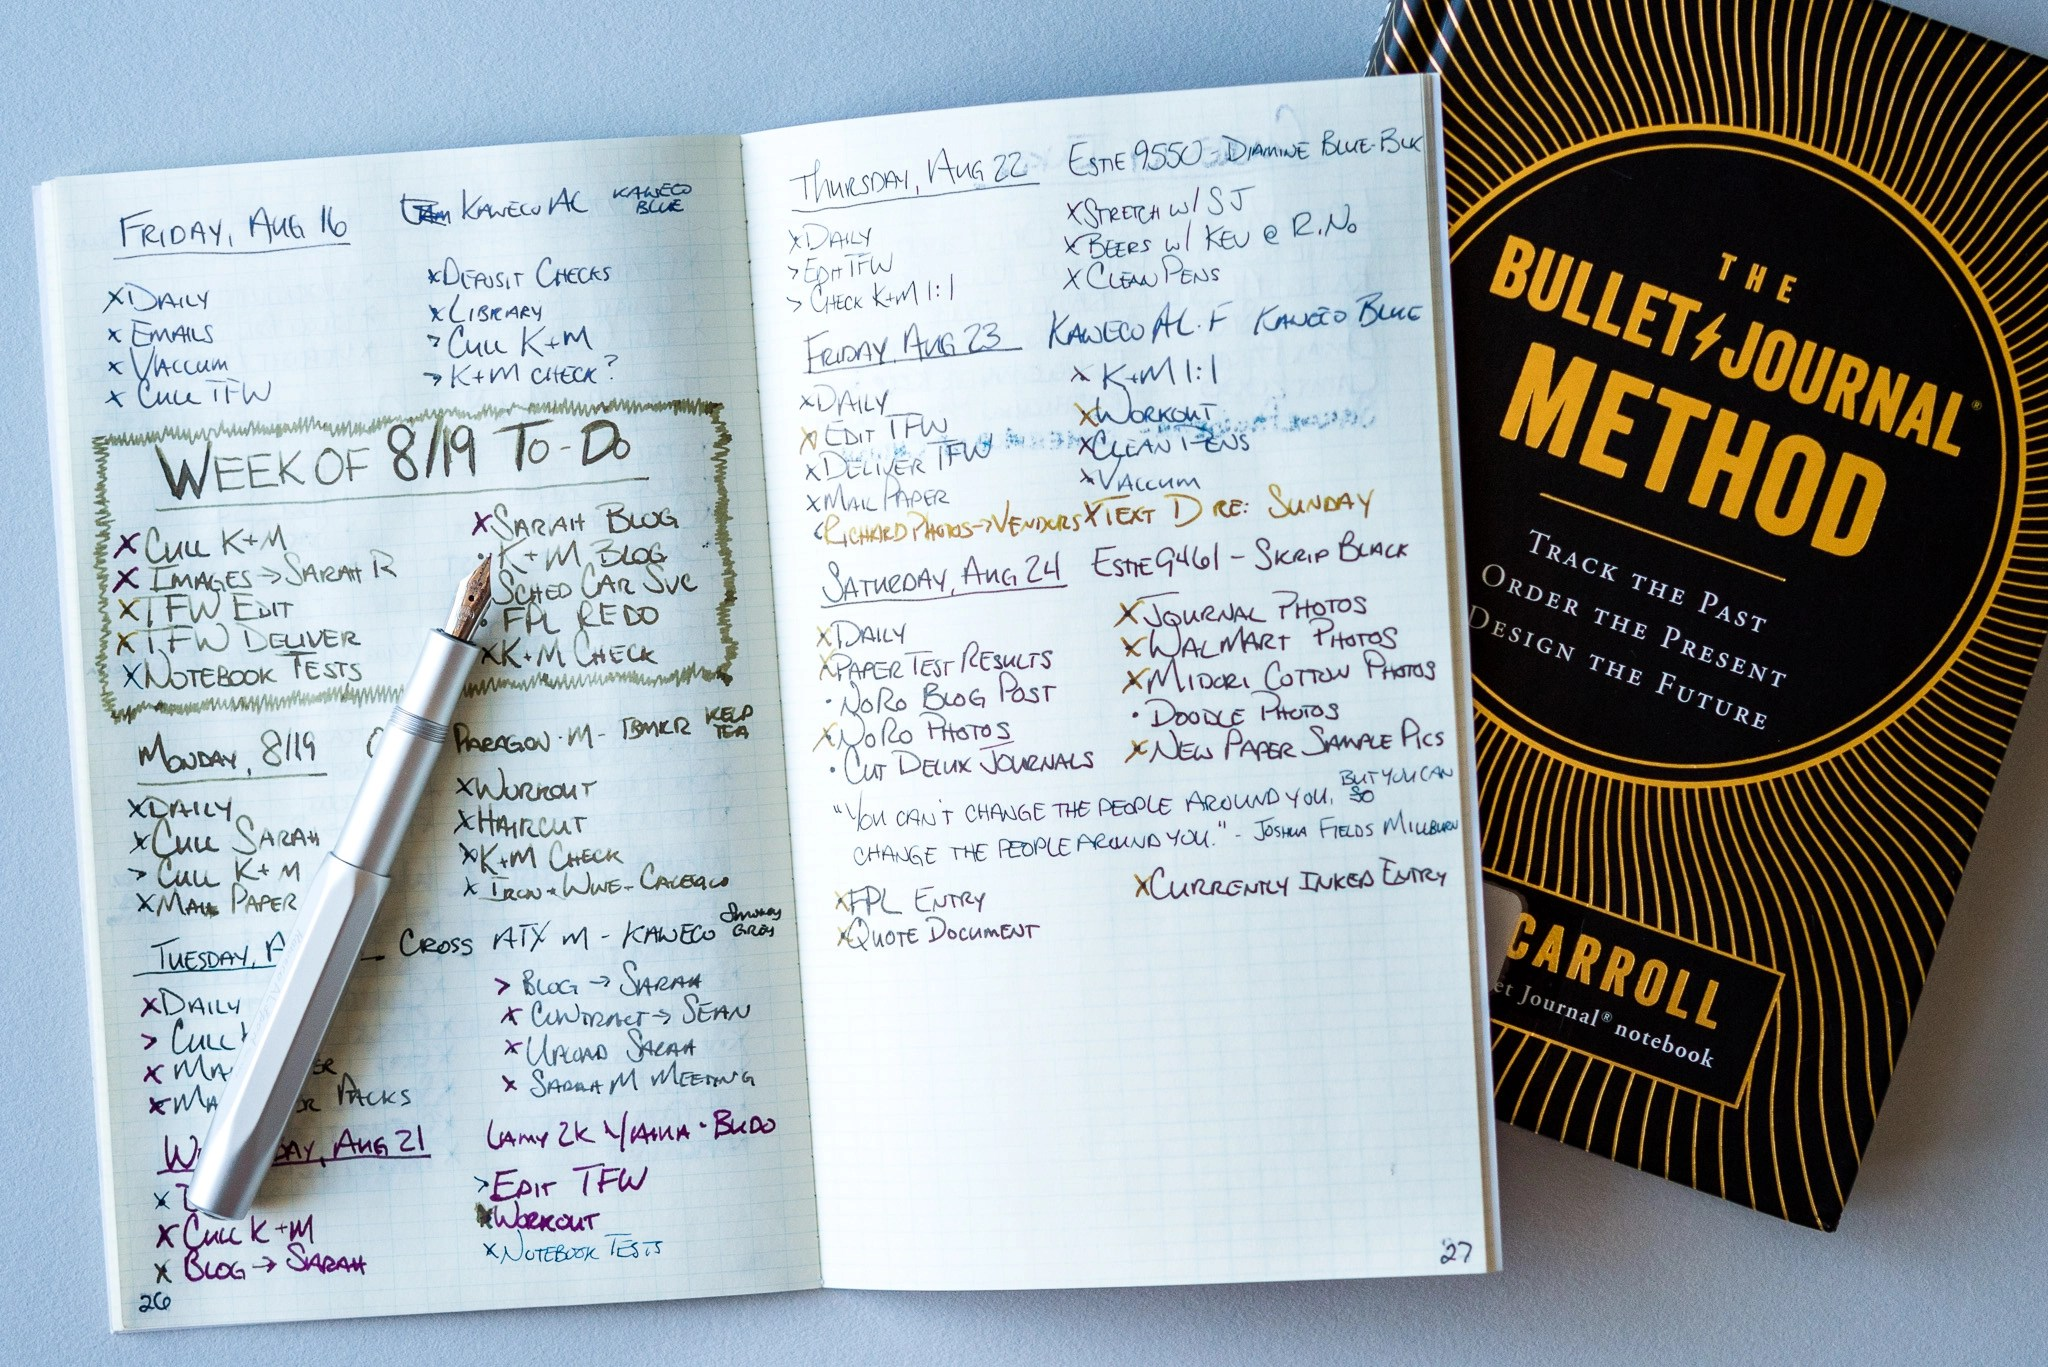 Quick Book Review - The Bullet Journal Method - Fountain Pen Love